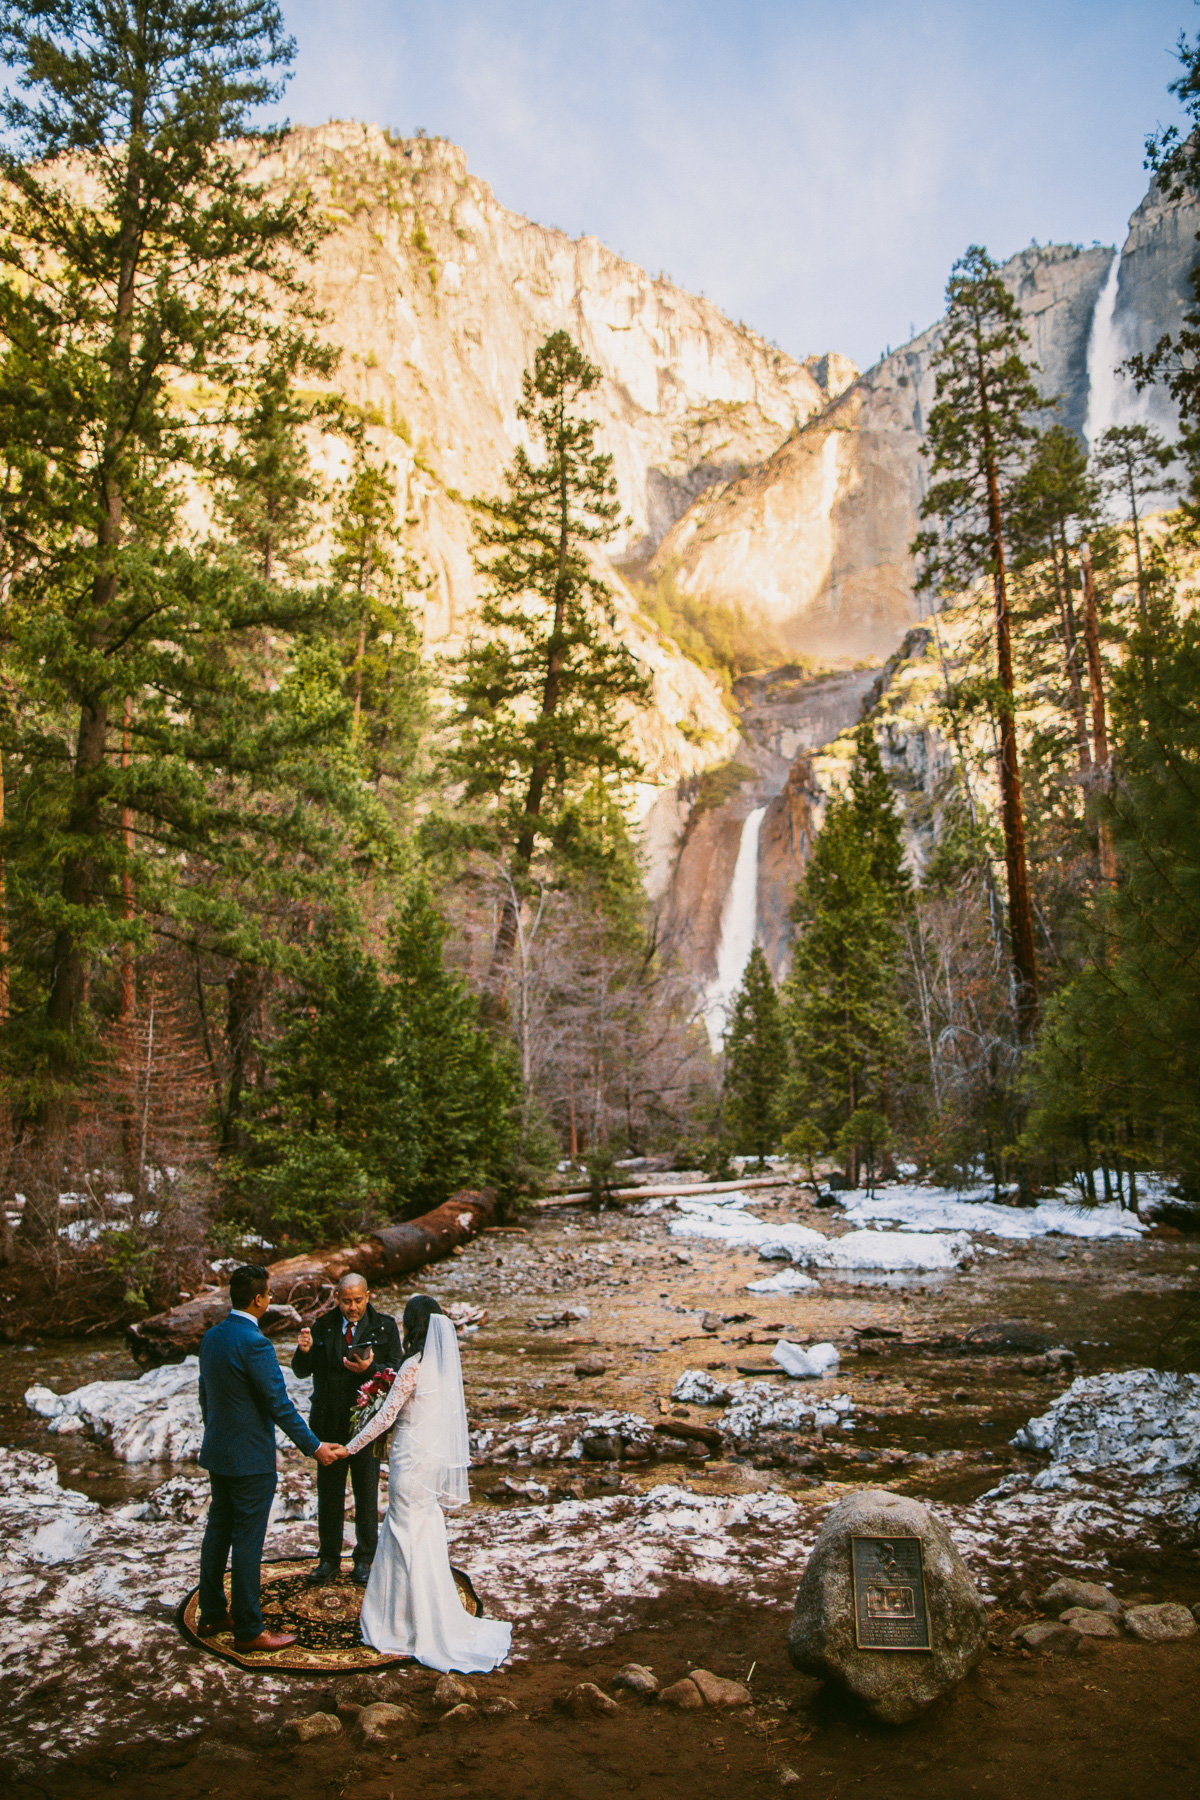 Bride & groom listen to their pastor during their sunrise Yosemite wedding in Yosemite Valley.